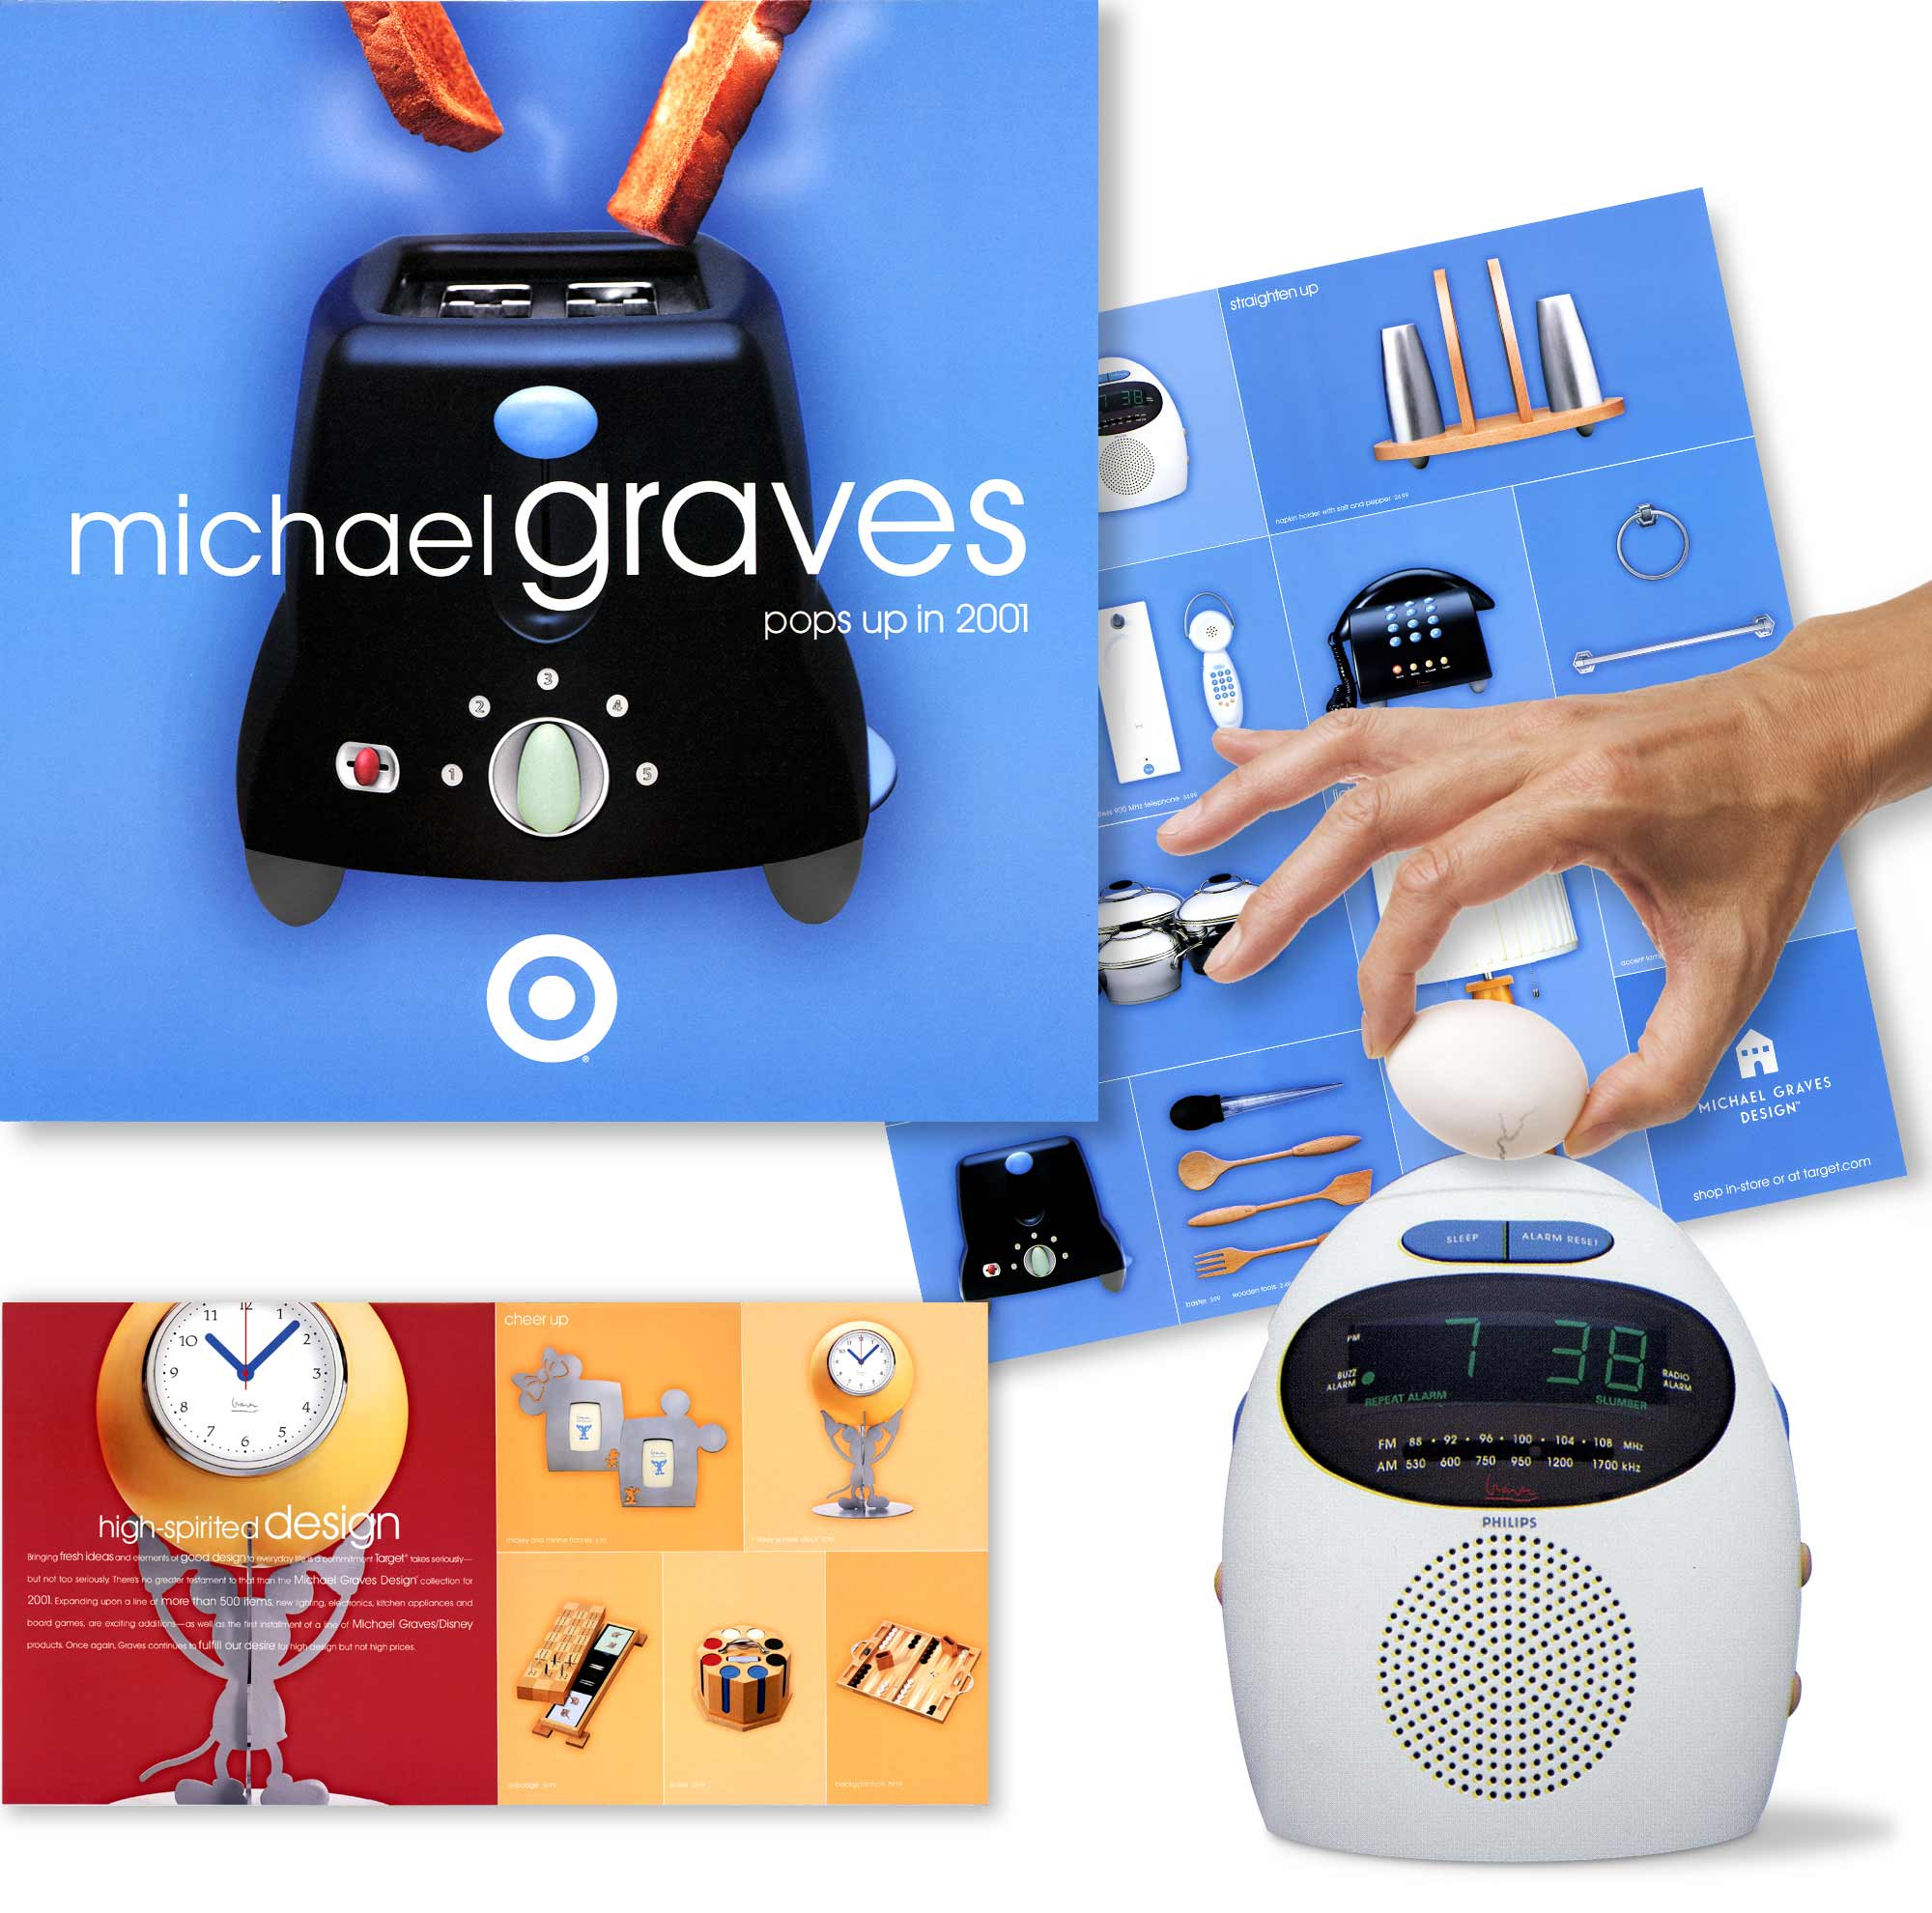 Michael Graves Direct Mail